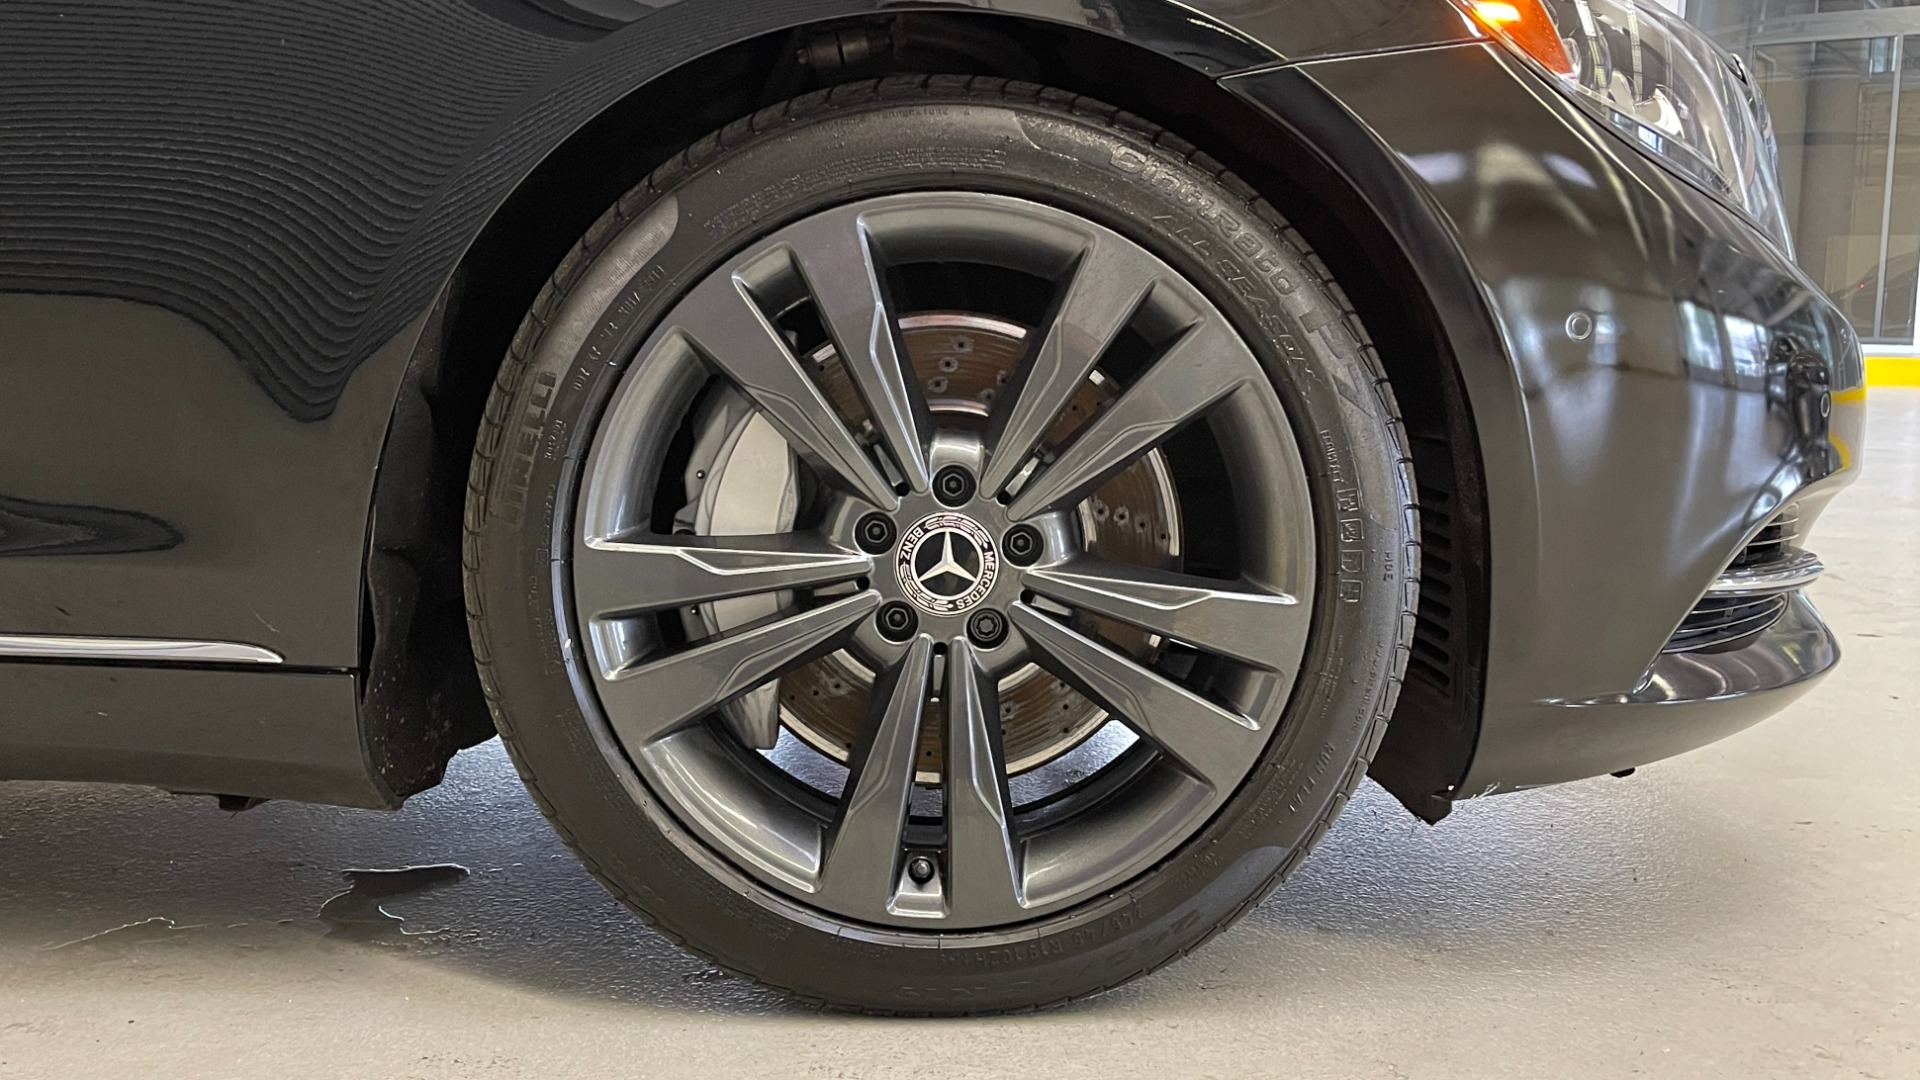 Used 2017 Mercedes-Benz S-CLASS S 550 4MATIC PREMIUM / NAV / BURMESTER / SUNROOF / REARVIEW for sale $58,995 at Formula Imports in Charlotte NC 28227 72